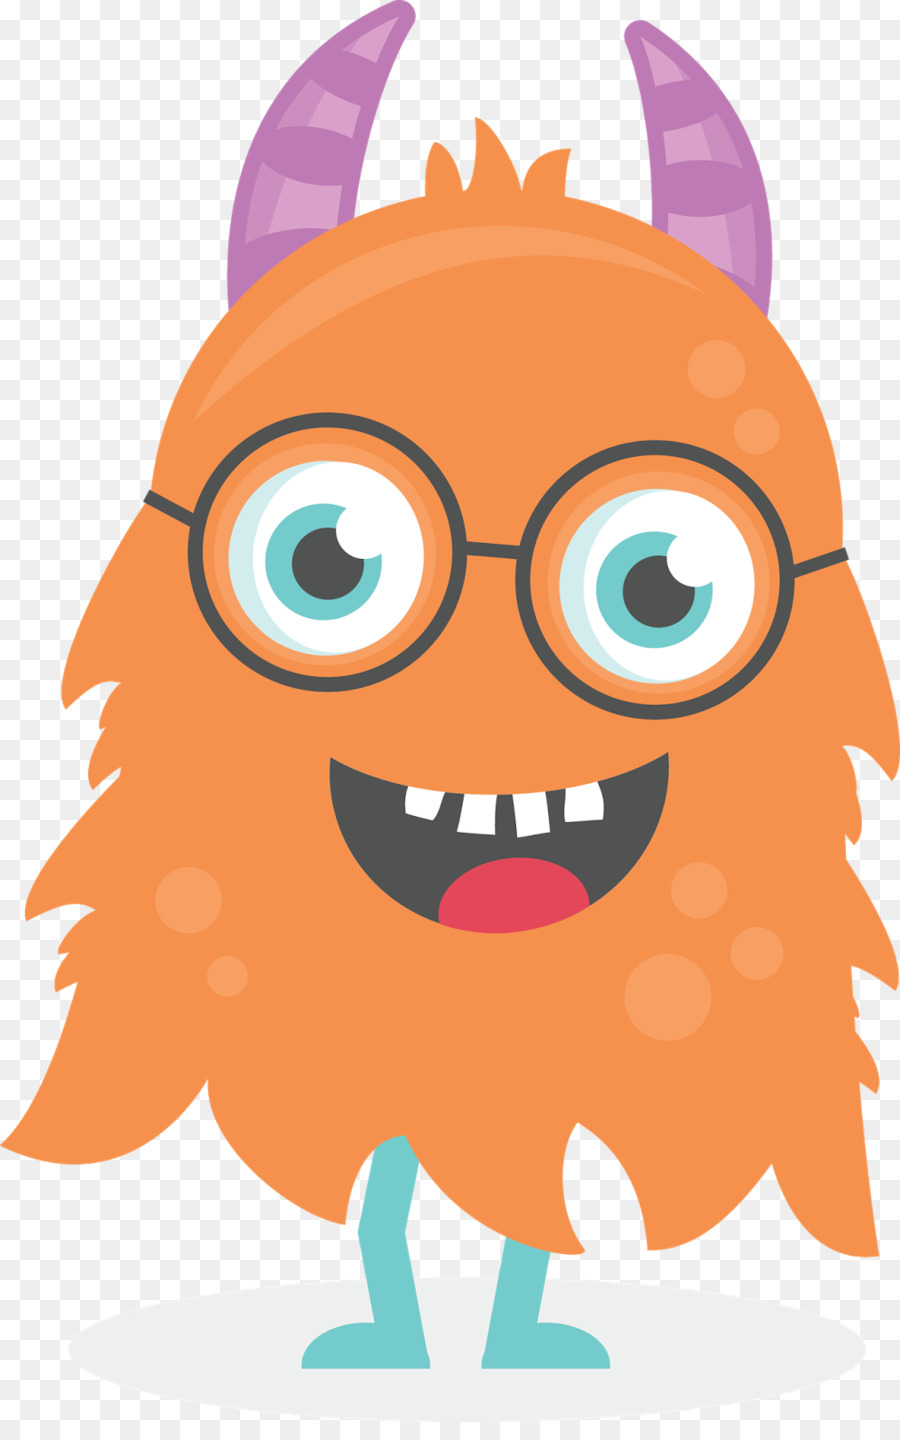 Cute Monsters Png Free Cute Monsters Png Transparent Images 25911 Pngio